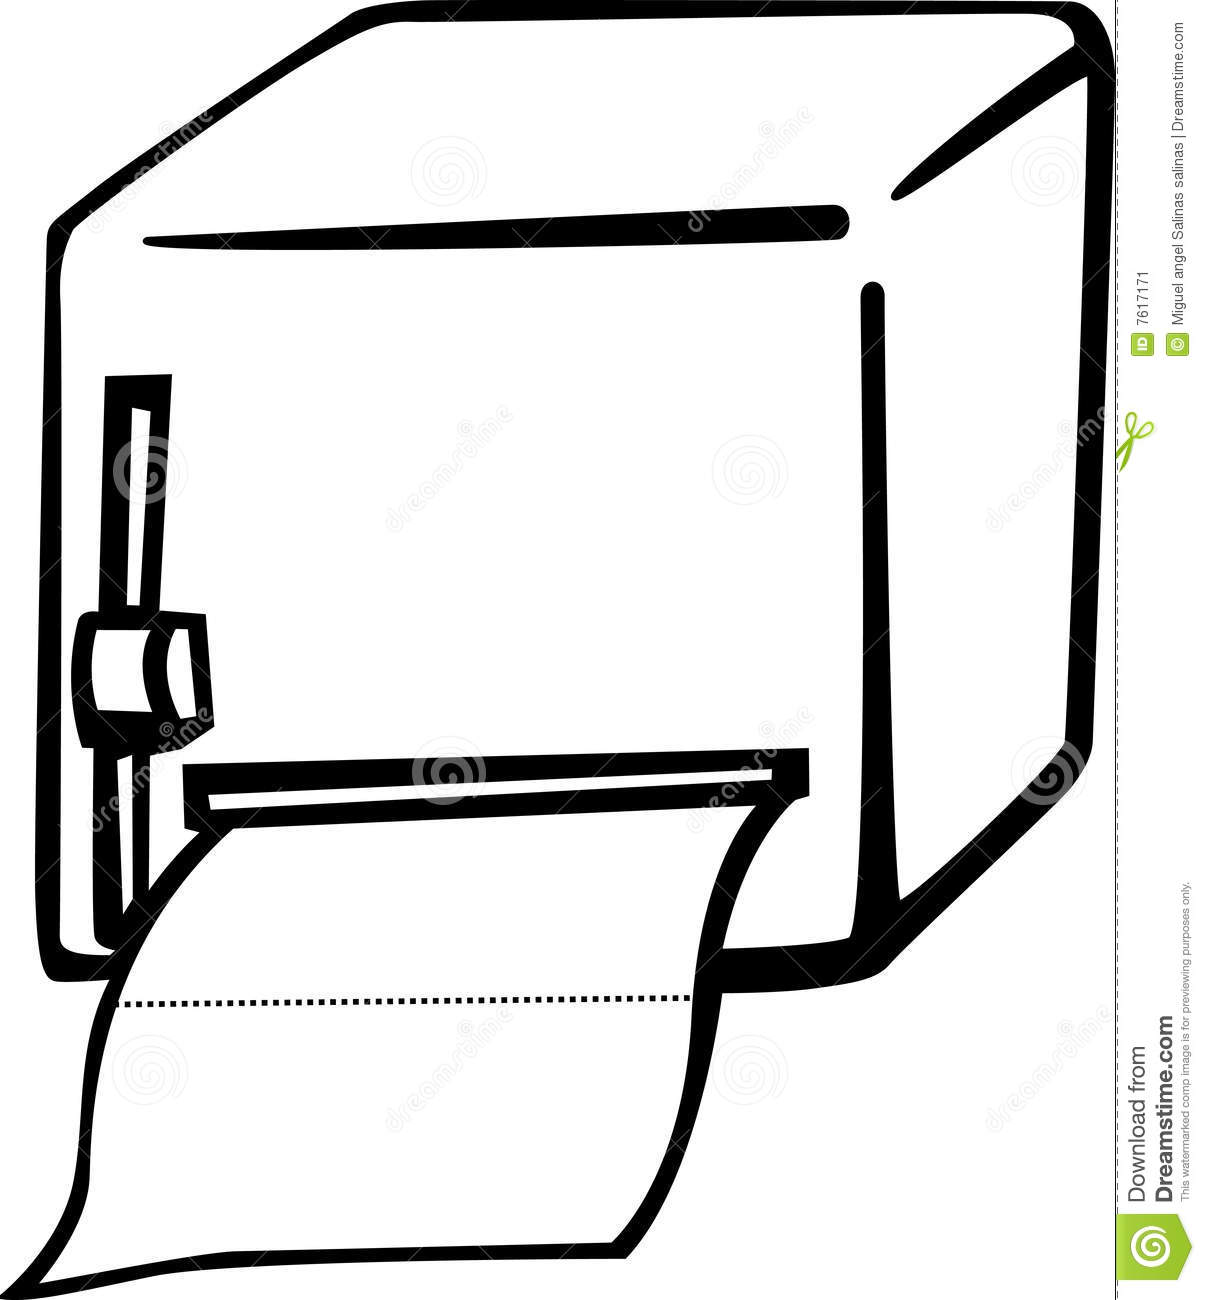 Dispenser clipart clipground for Black and white bathroom paper